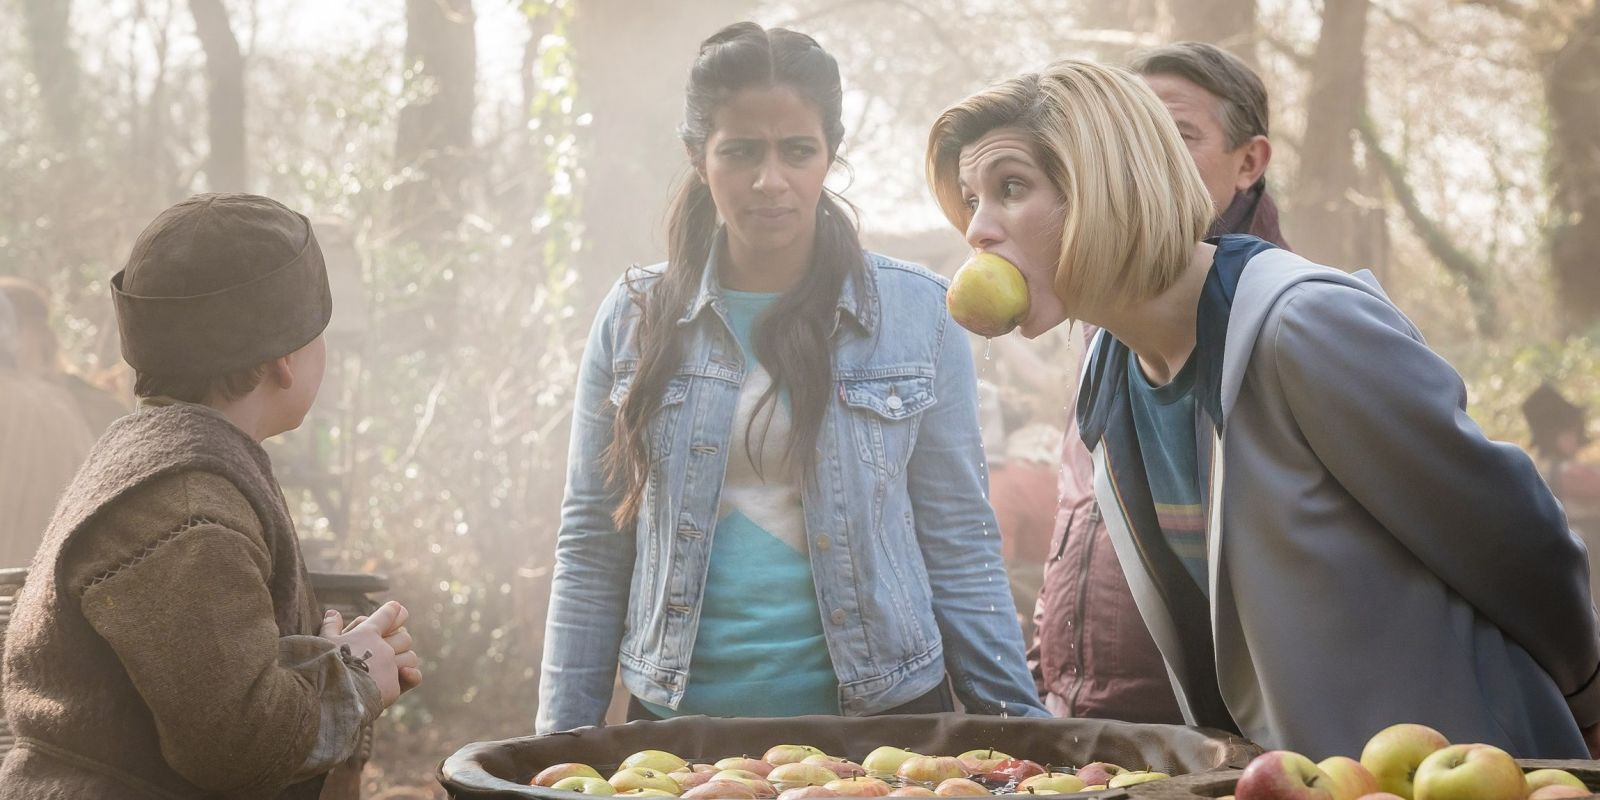 Doctor Who series 11 episodes 7 and 8 feature the galaxy's